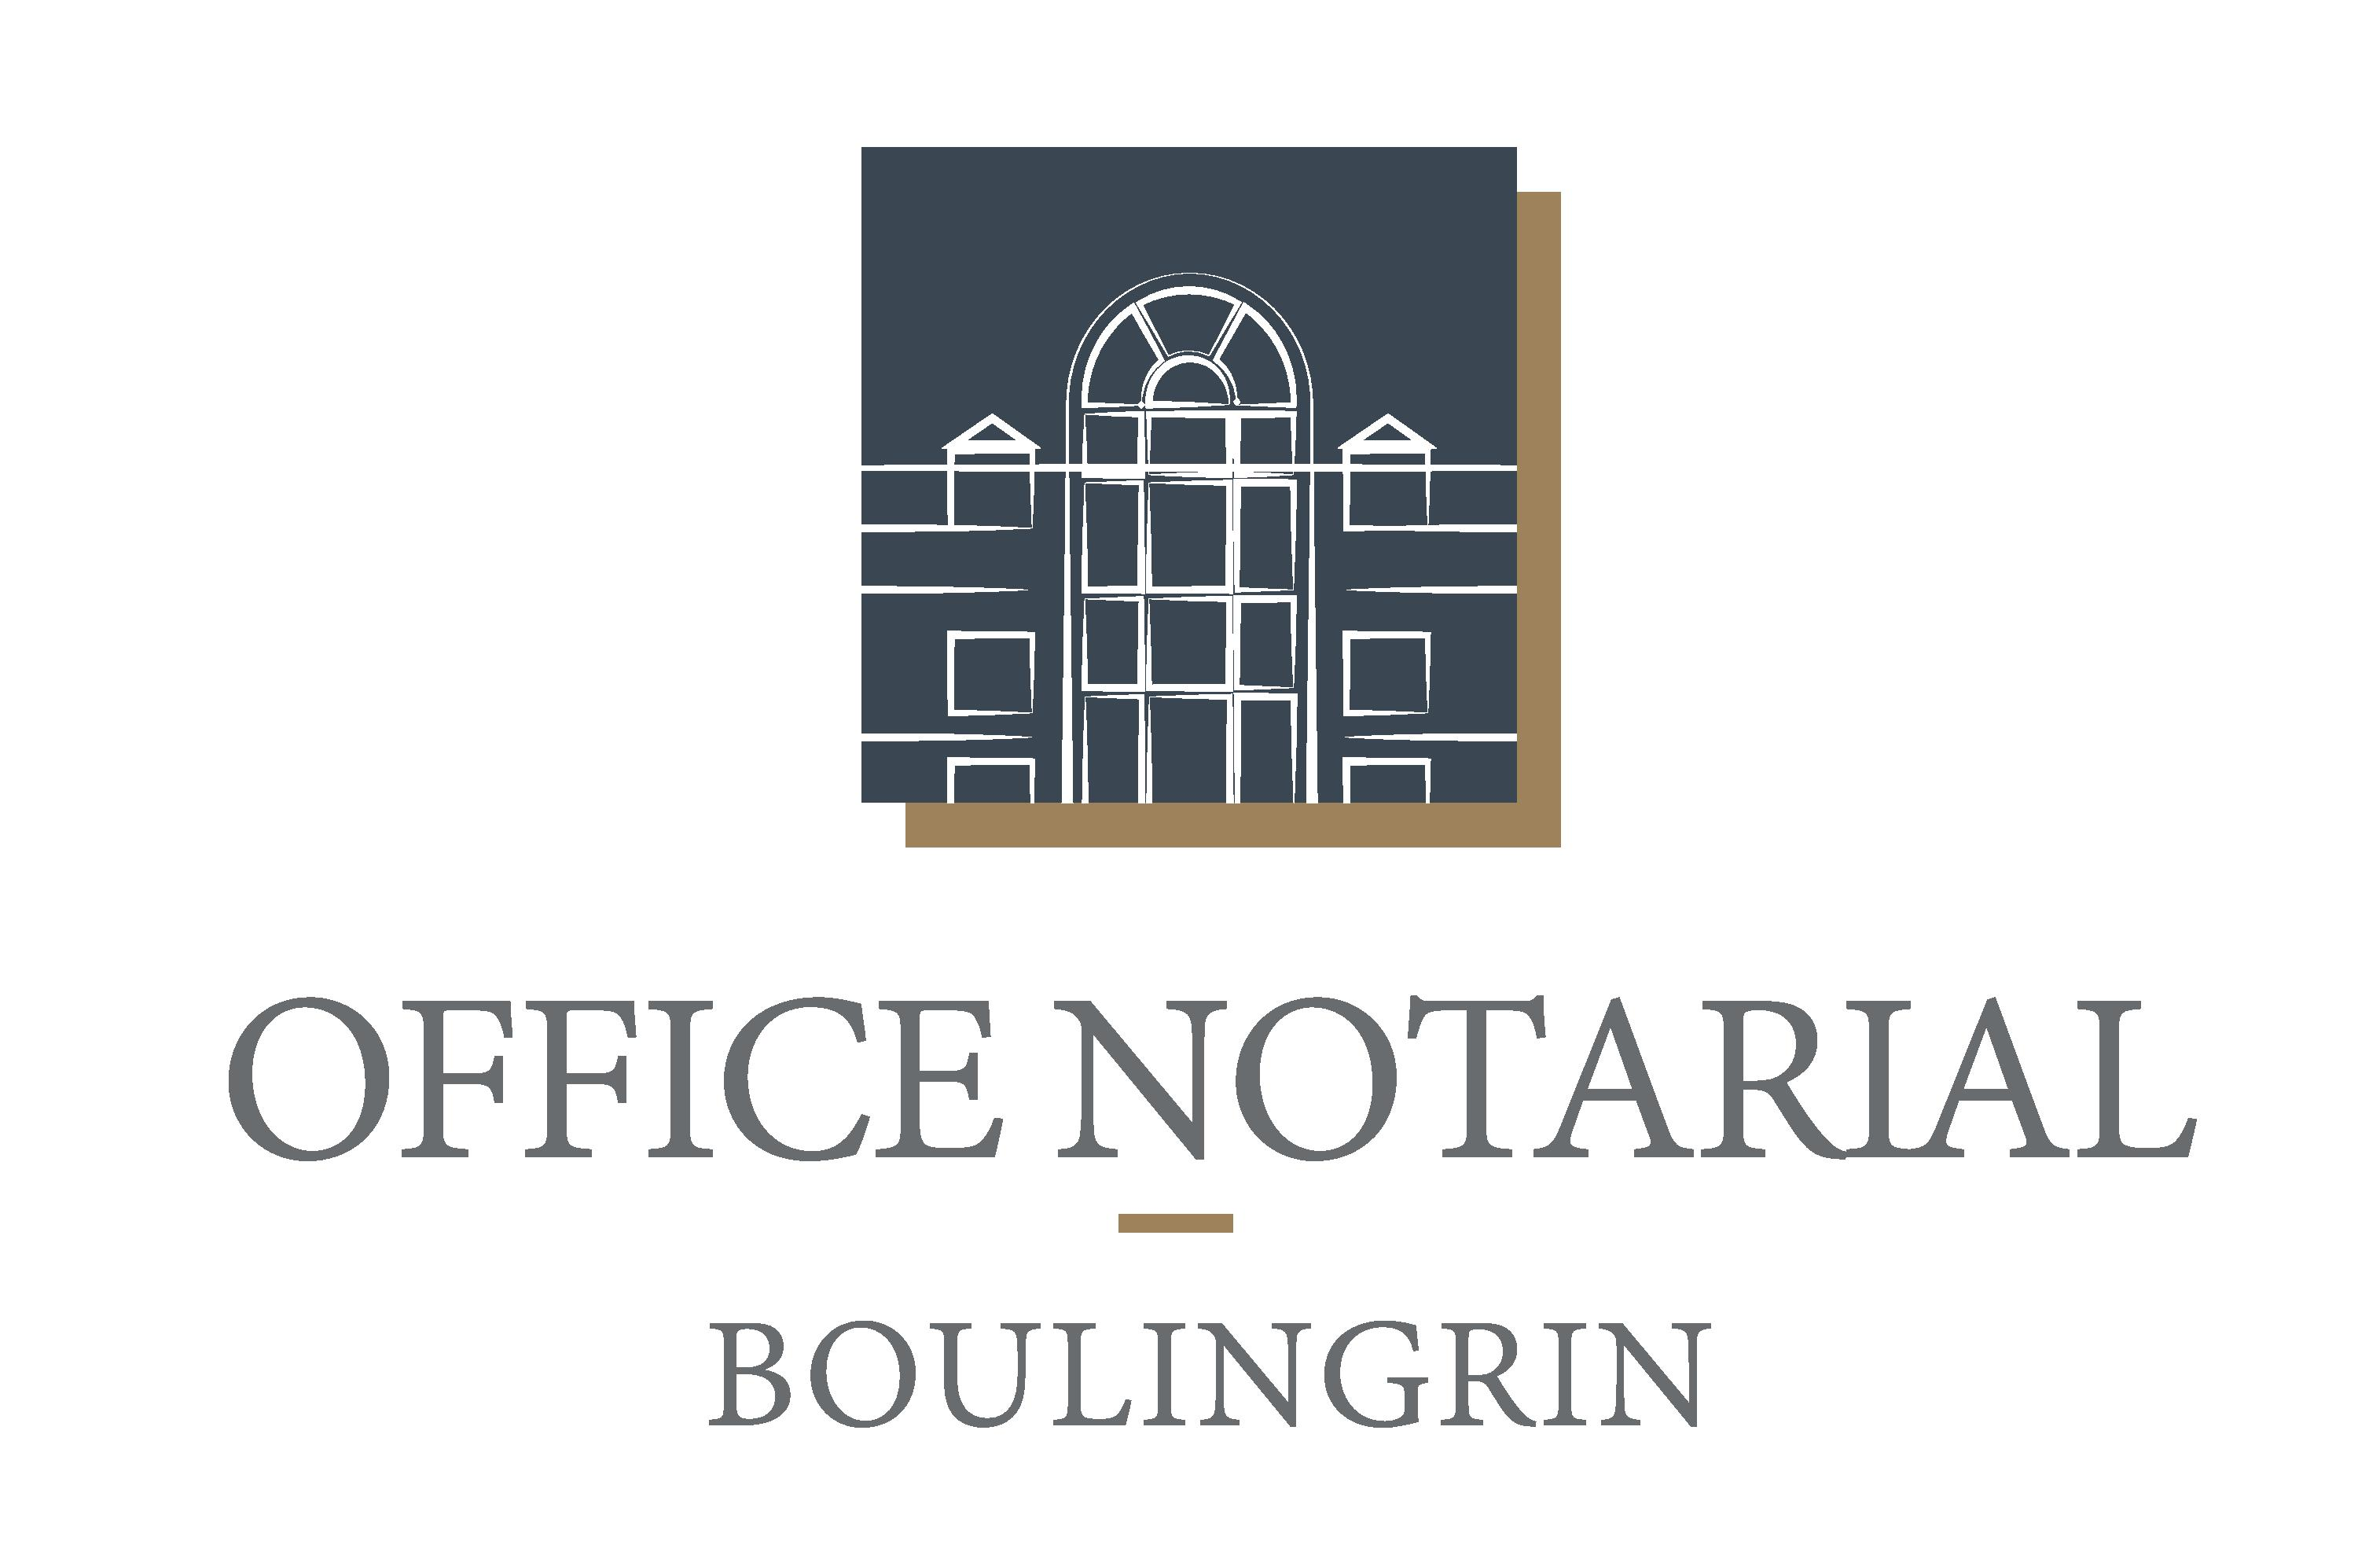 Notaire rouen cedex 76 office notarial de ma tres jean christophe picot christian houliere - Office notarial ile d yeu ...